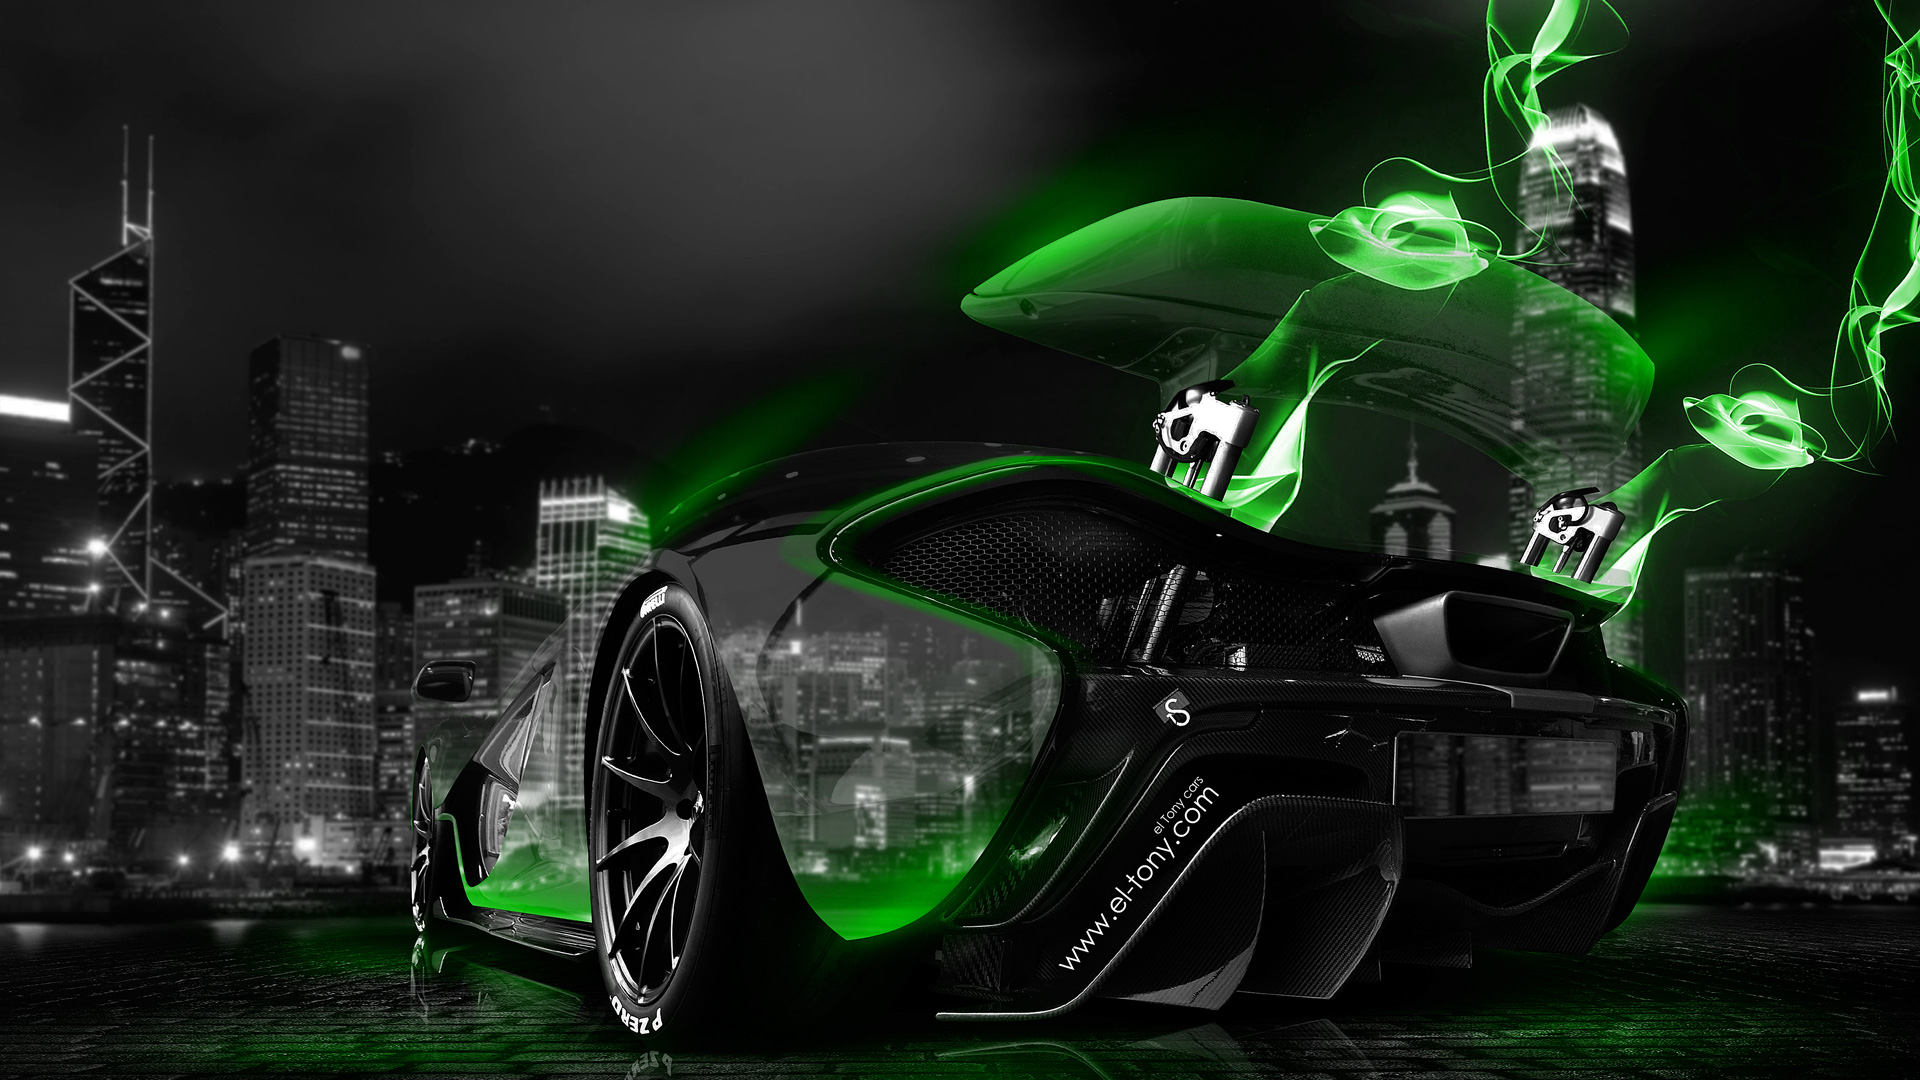 4k Wallpaper Car Lamborghini Mclaren P1 Neon Energy Crystal City Car 2014 El Tony